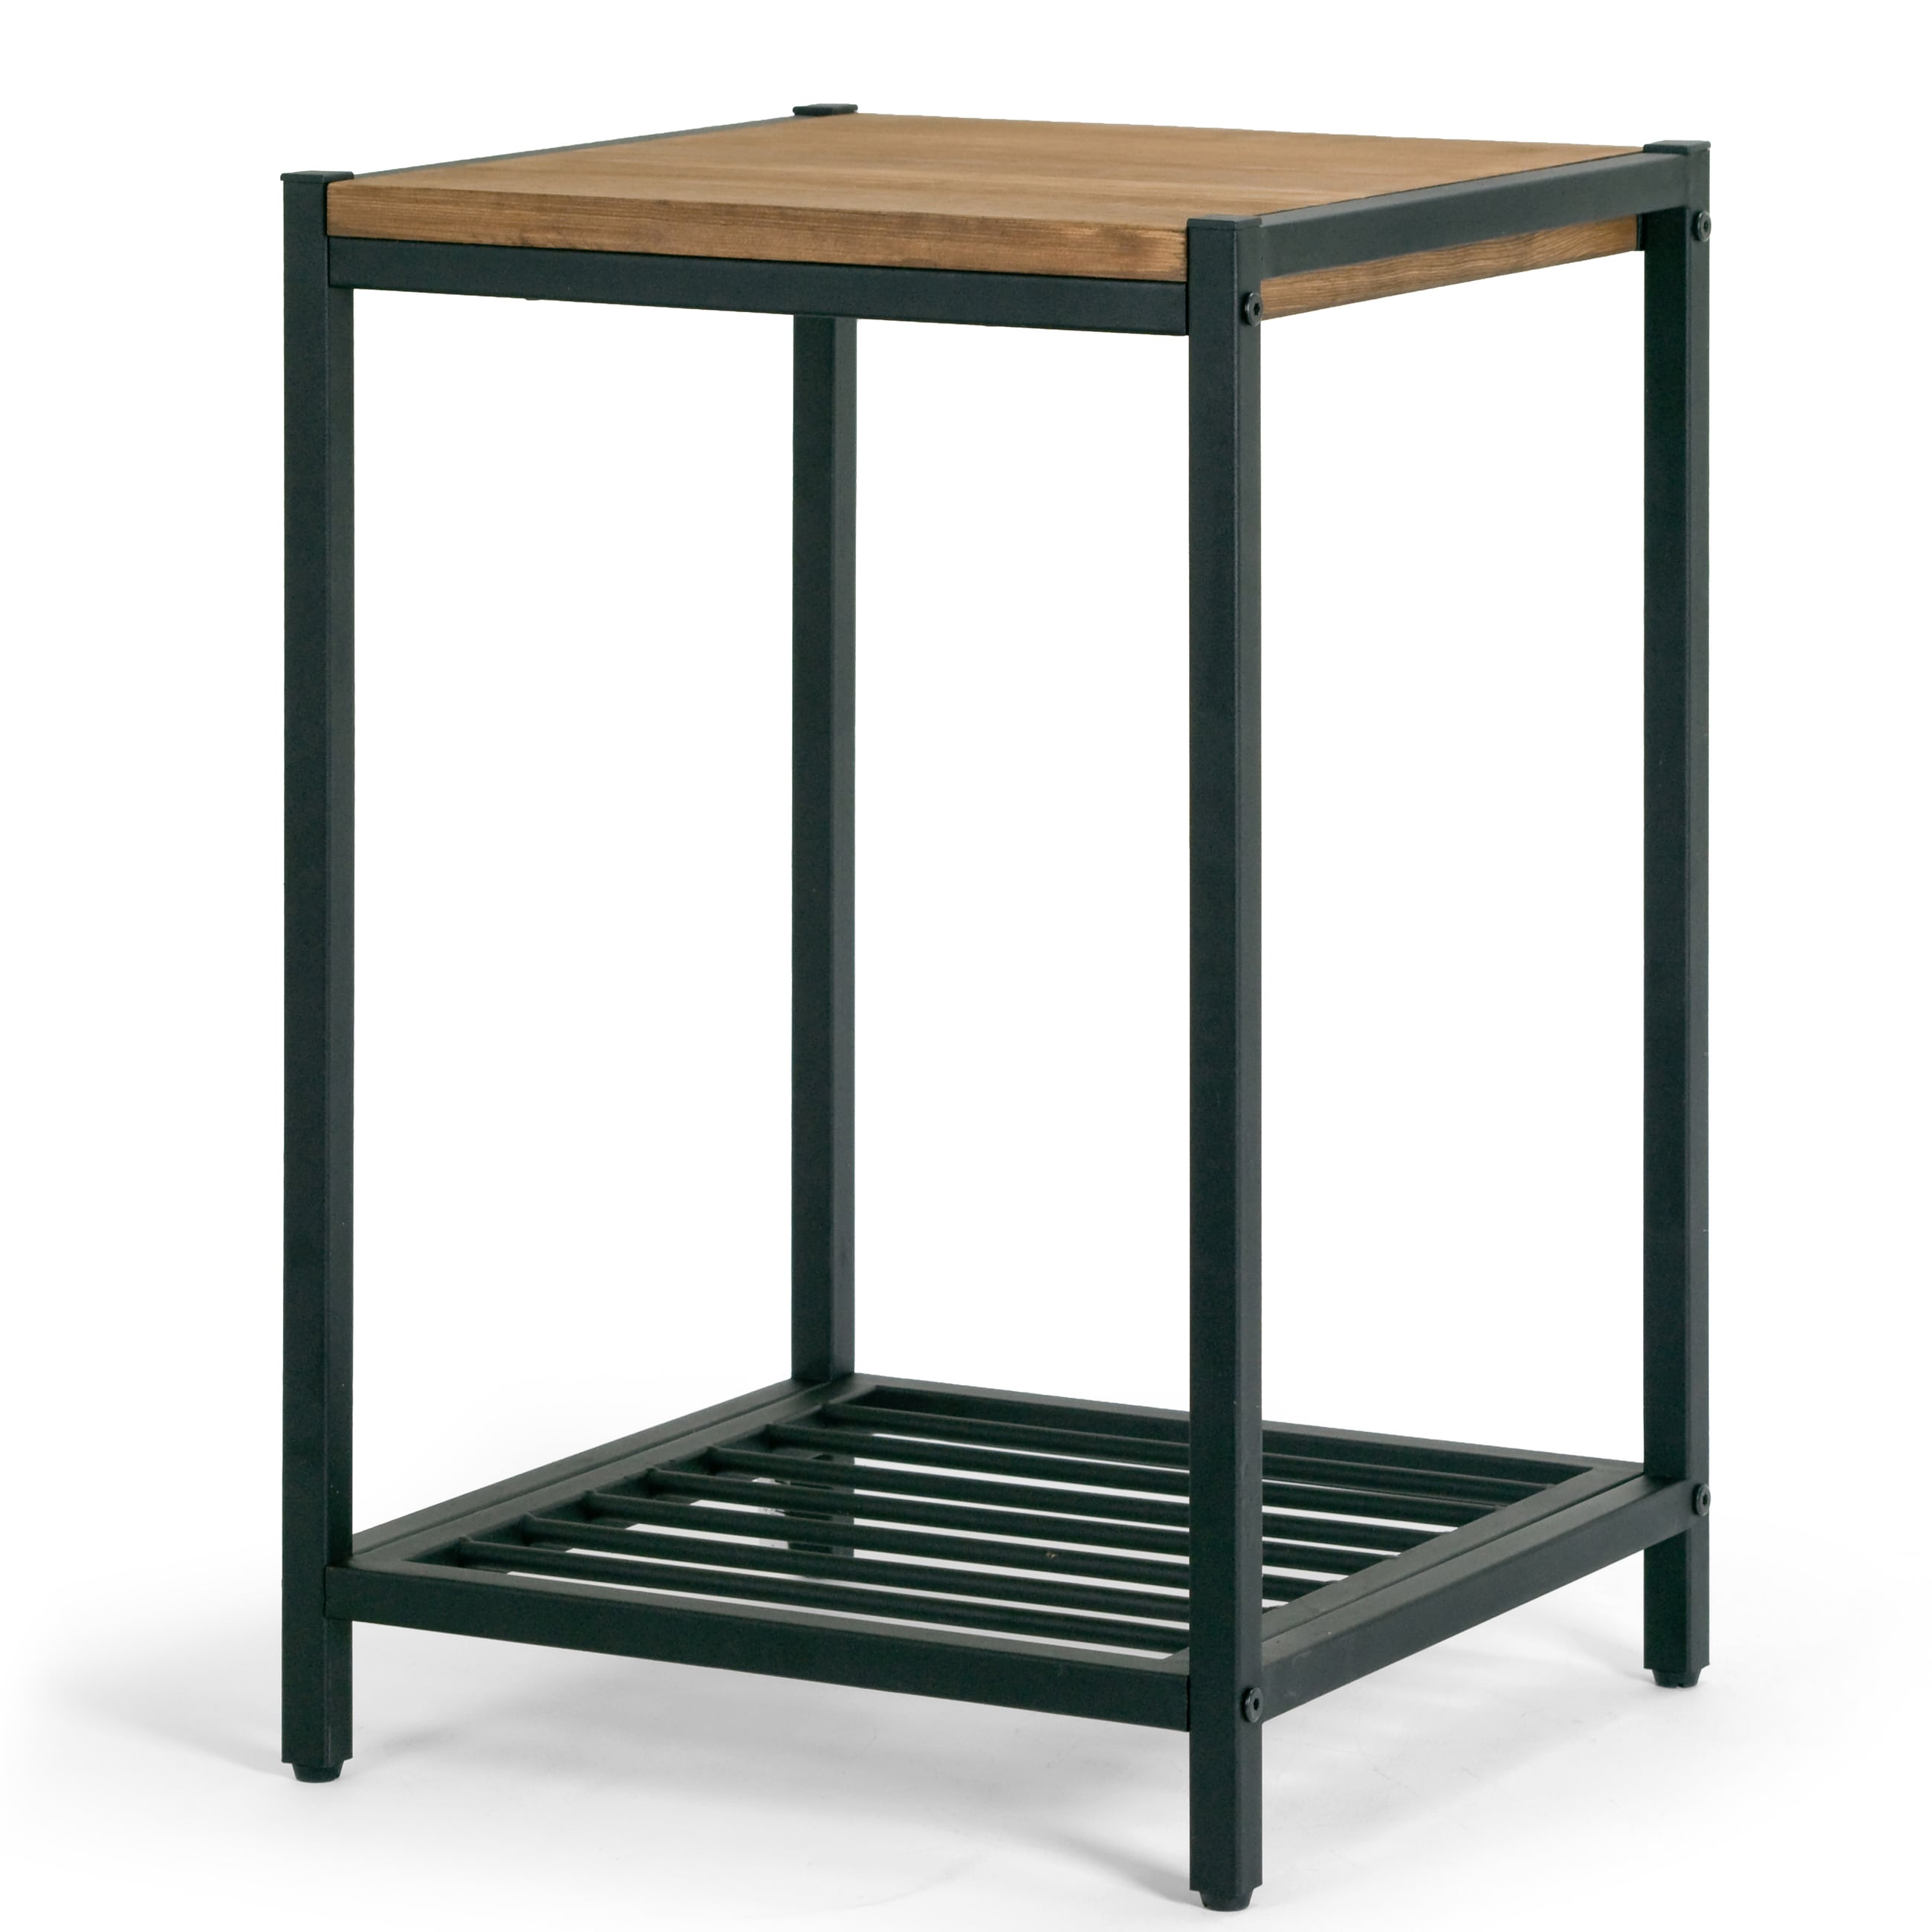 Ailis Brown Pine Wood Black Metal Frame Accent End Table Overstock 13689079